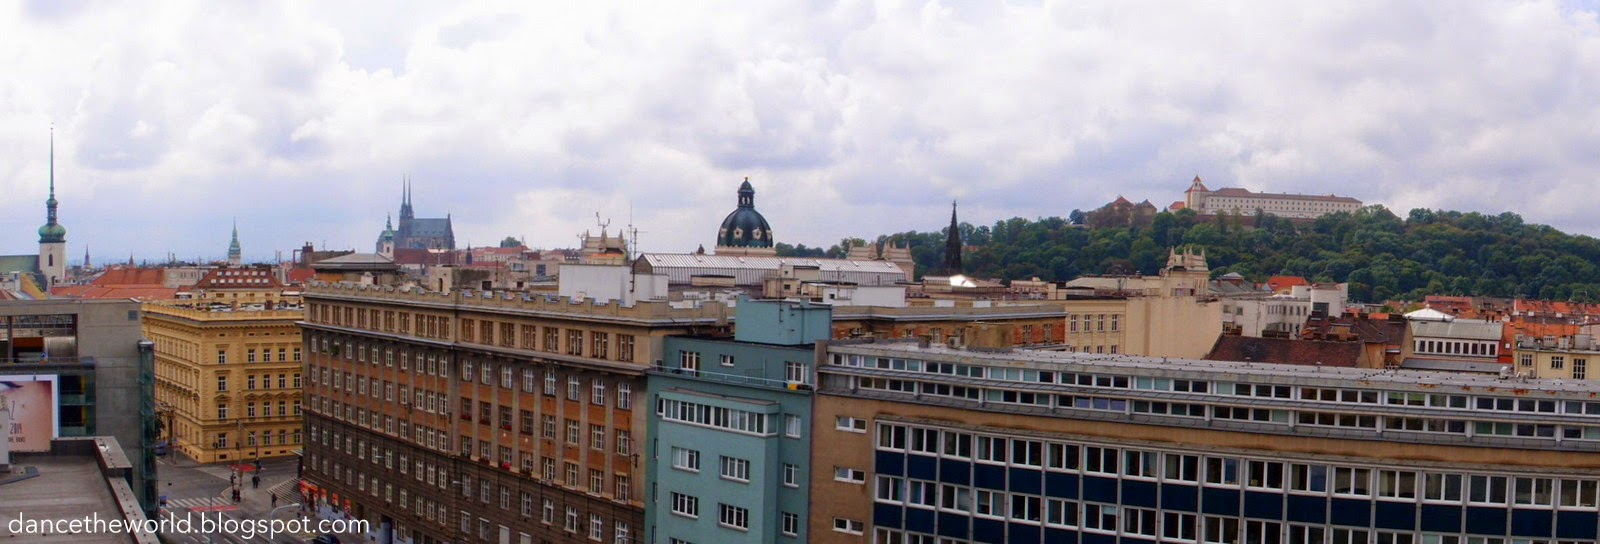 View of Brno from our hotel window!